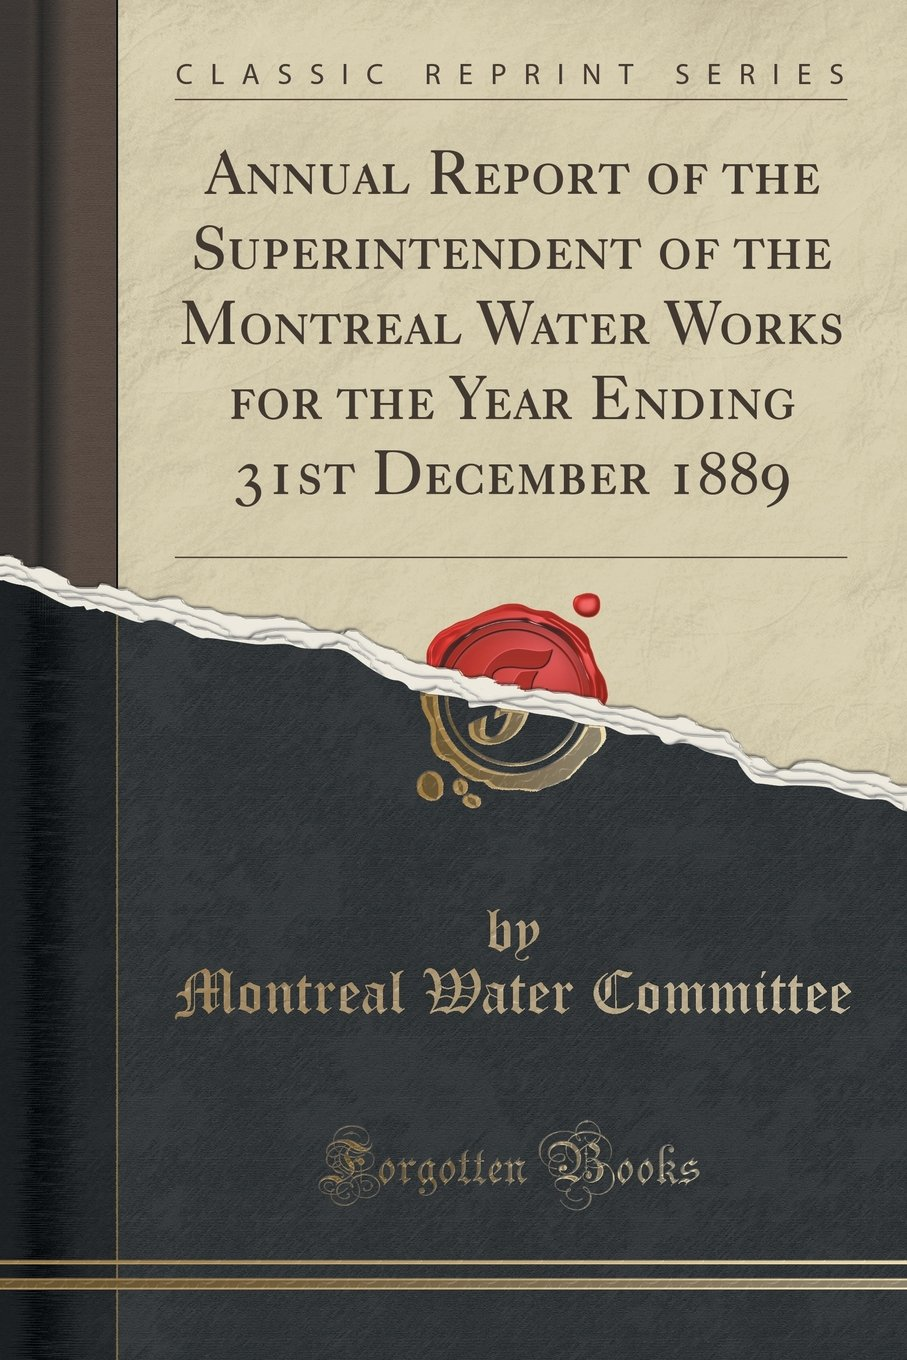 Annual Report of the Superintendent of the Montreal Water Works for the Year Ending 31st December 1889 (Classic Reprint) PDF